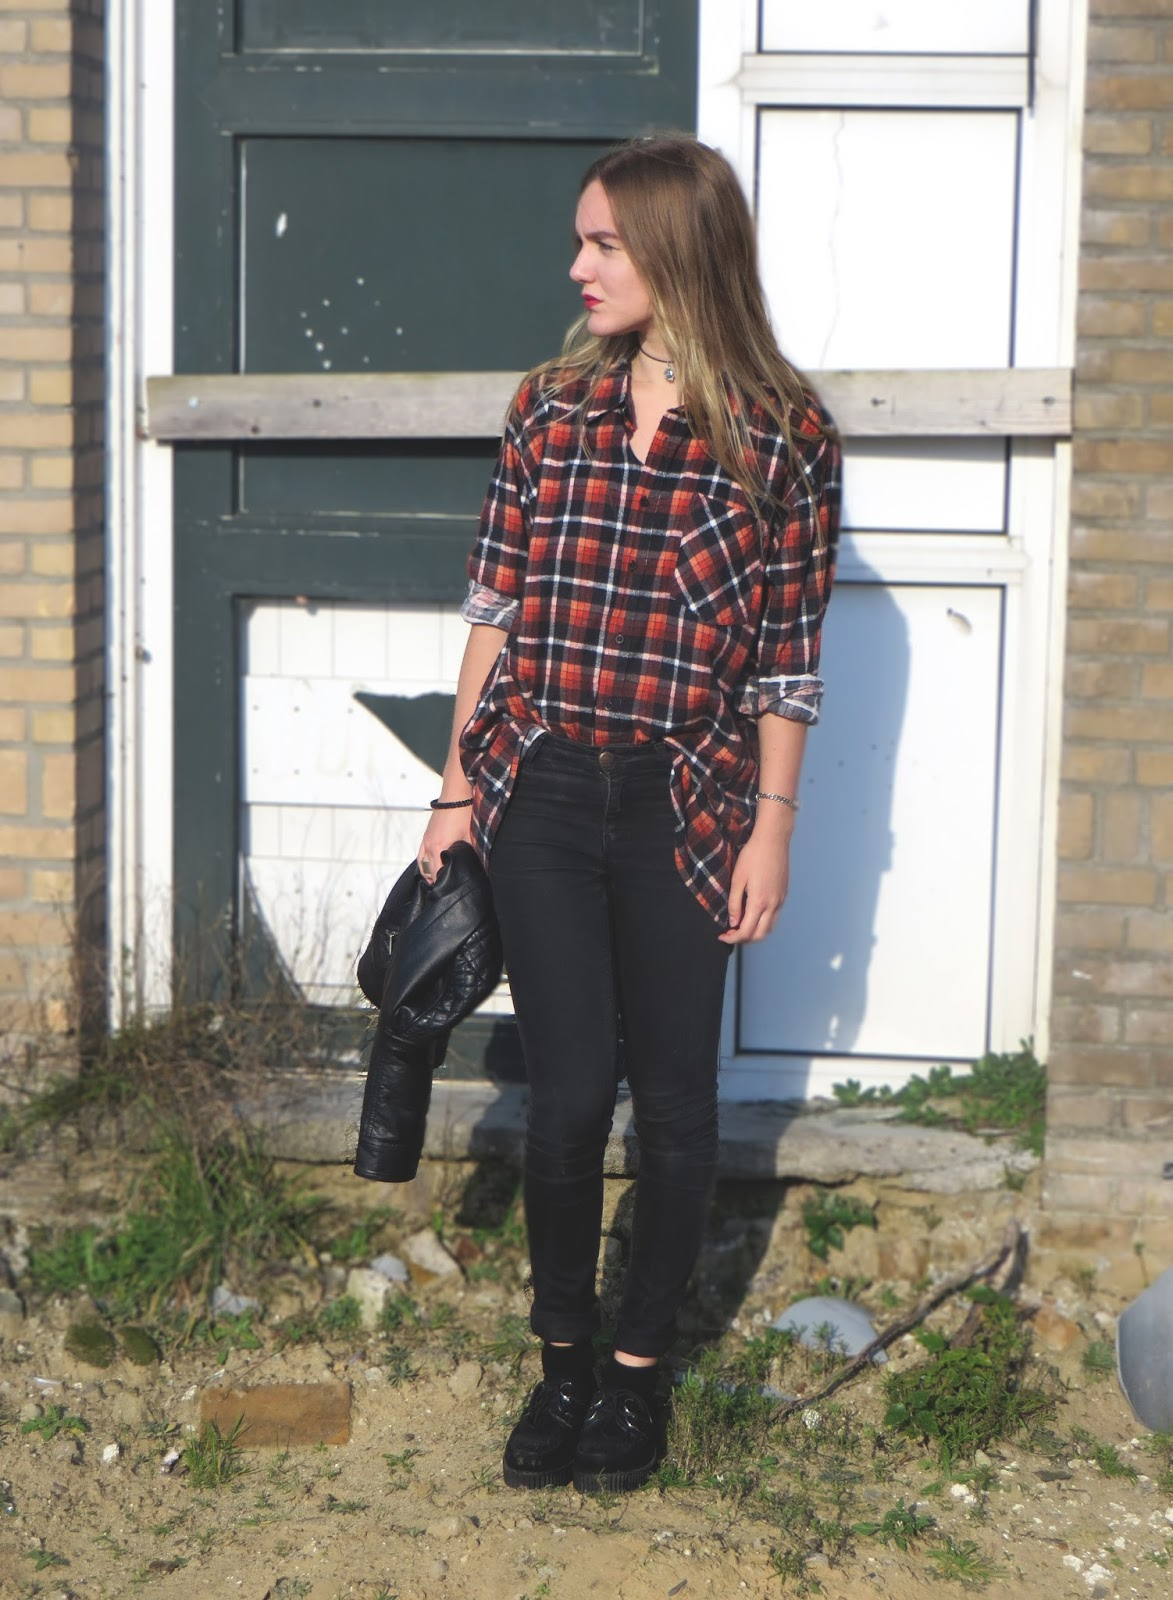 outfit with plaid or tartan shirt, black jeans, leather jacket and creepers